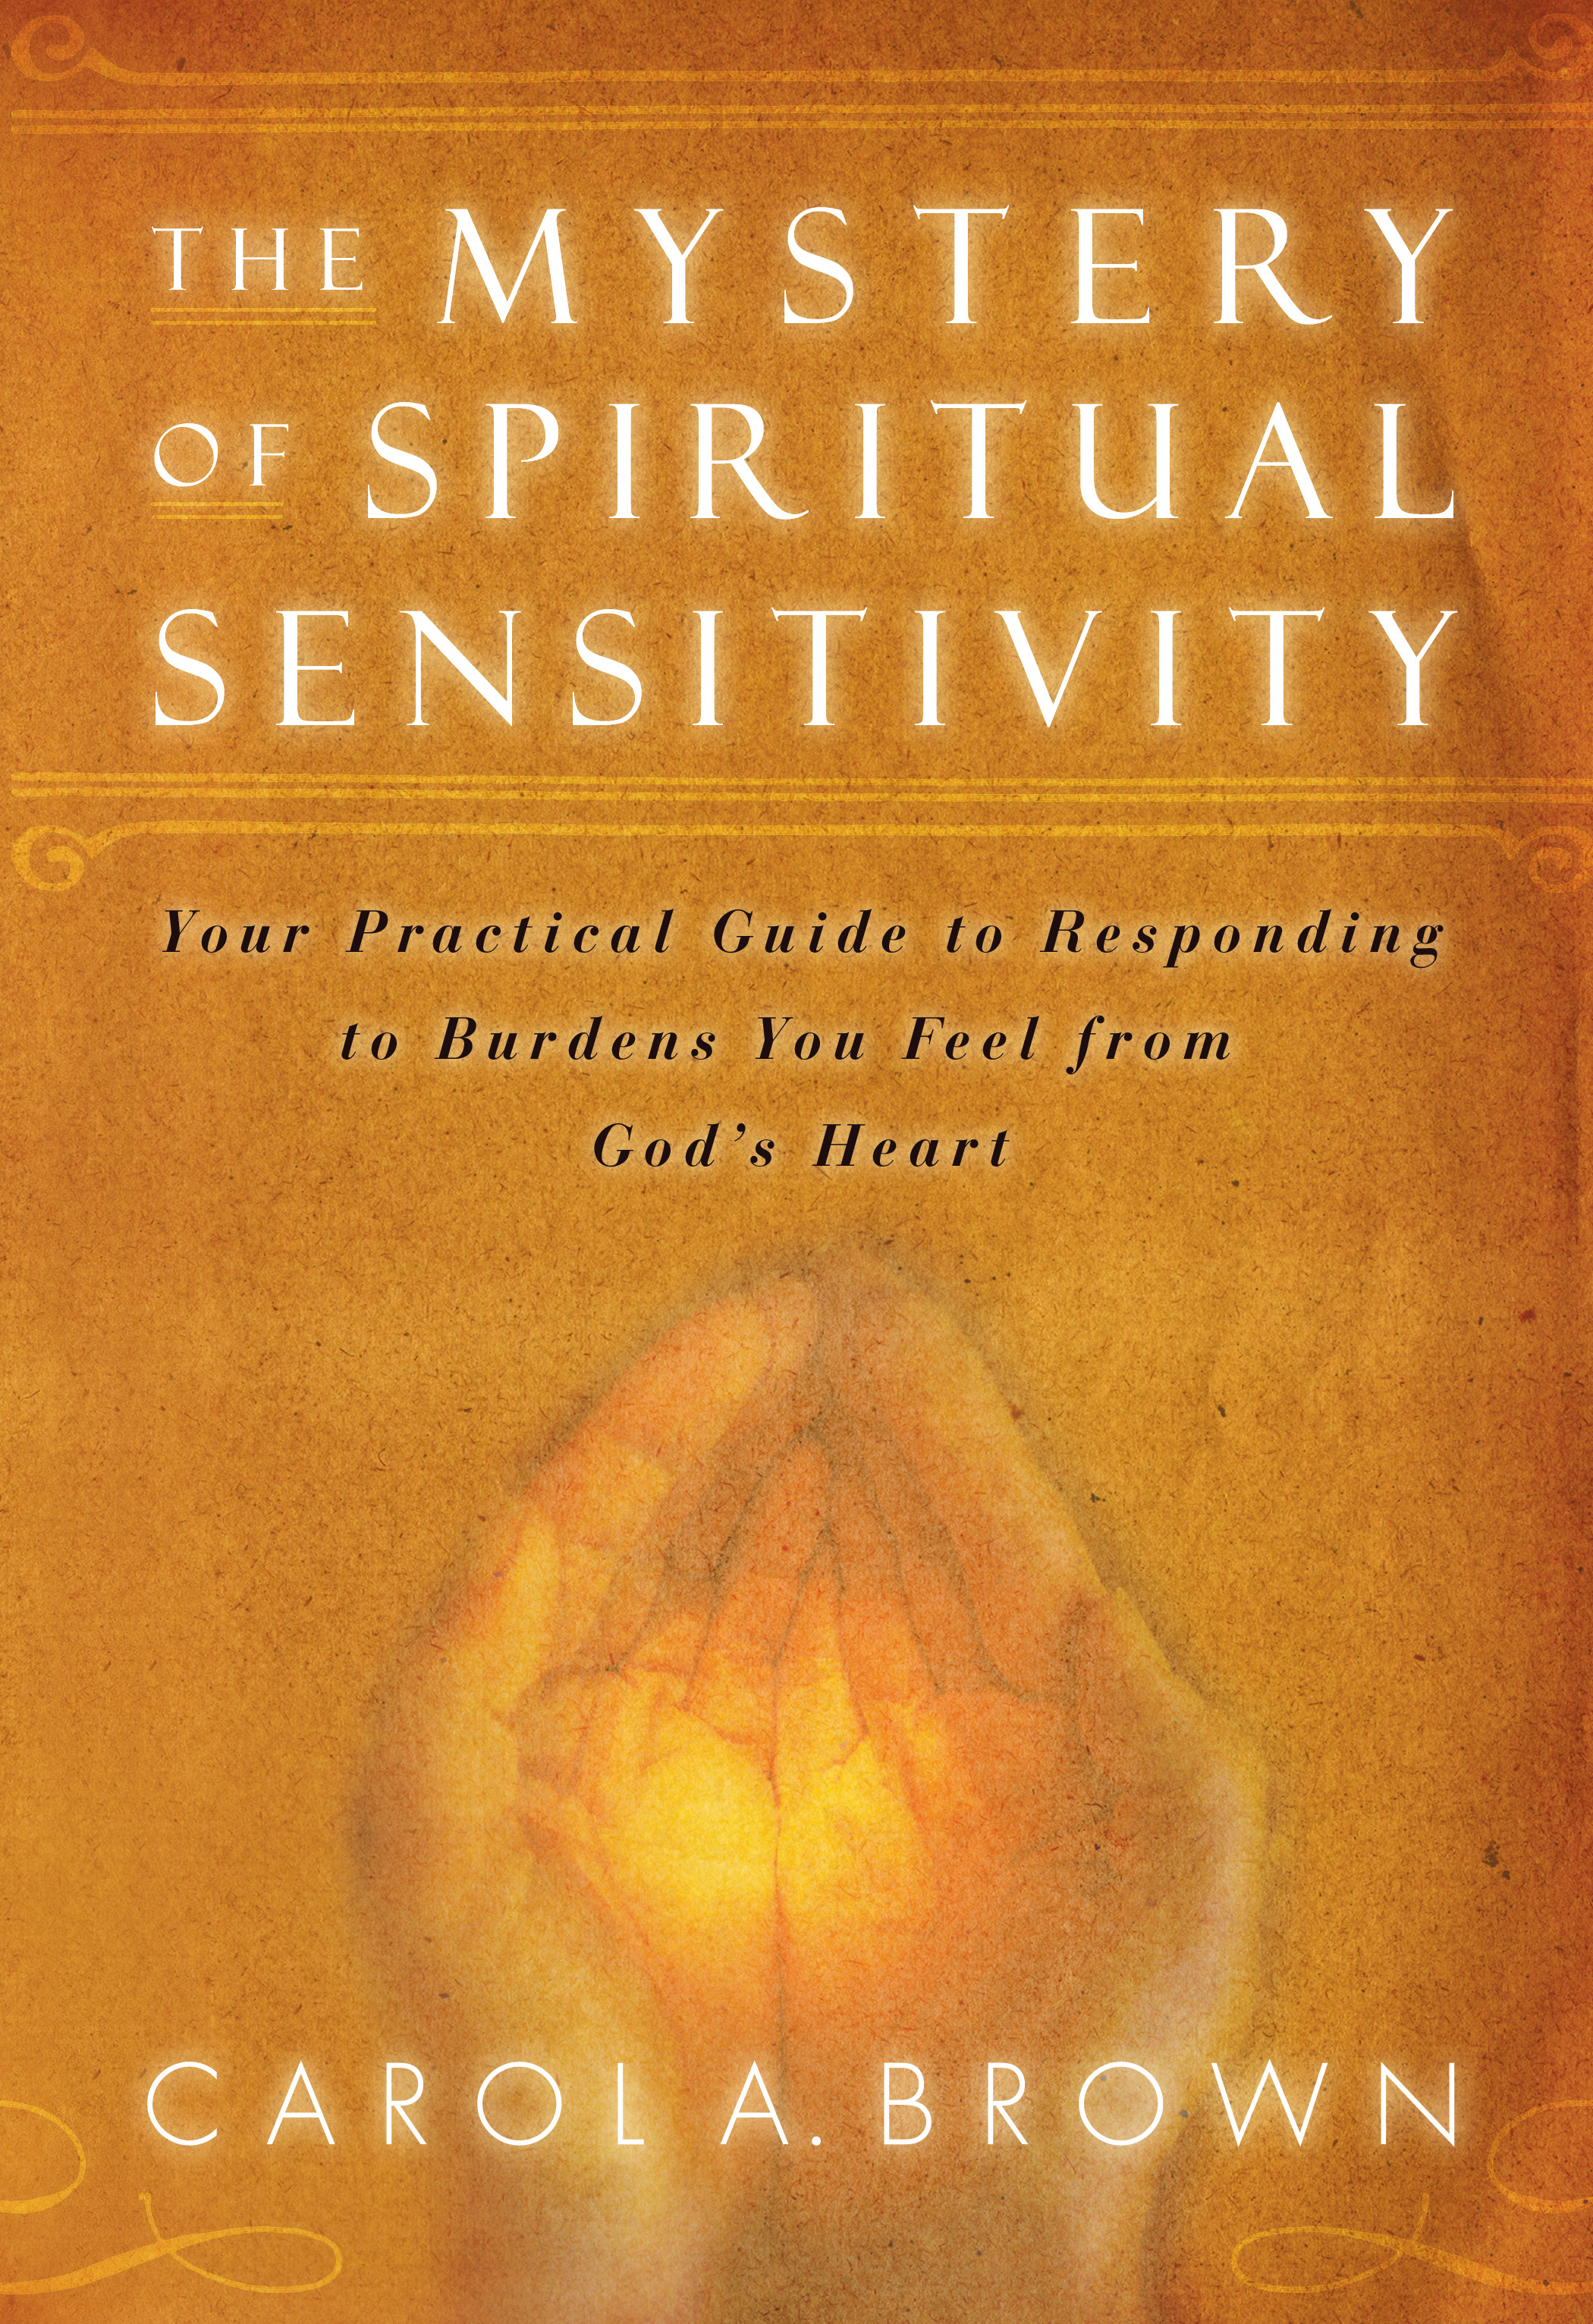 The Mystery of Spiritual Sensitivity: You Practical Guide to Responding to Burdens You Feel from God's Heart